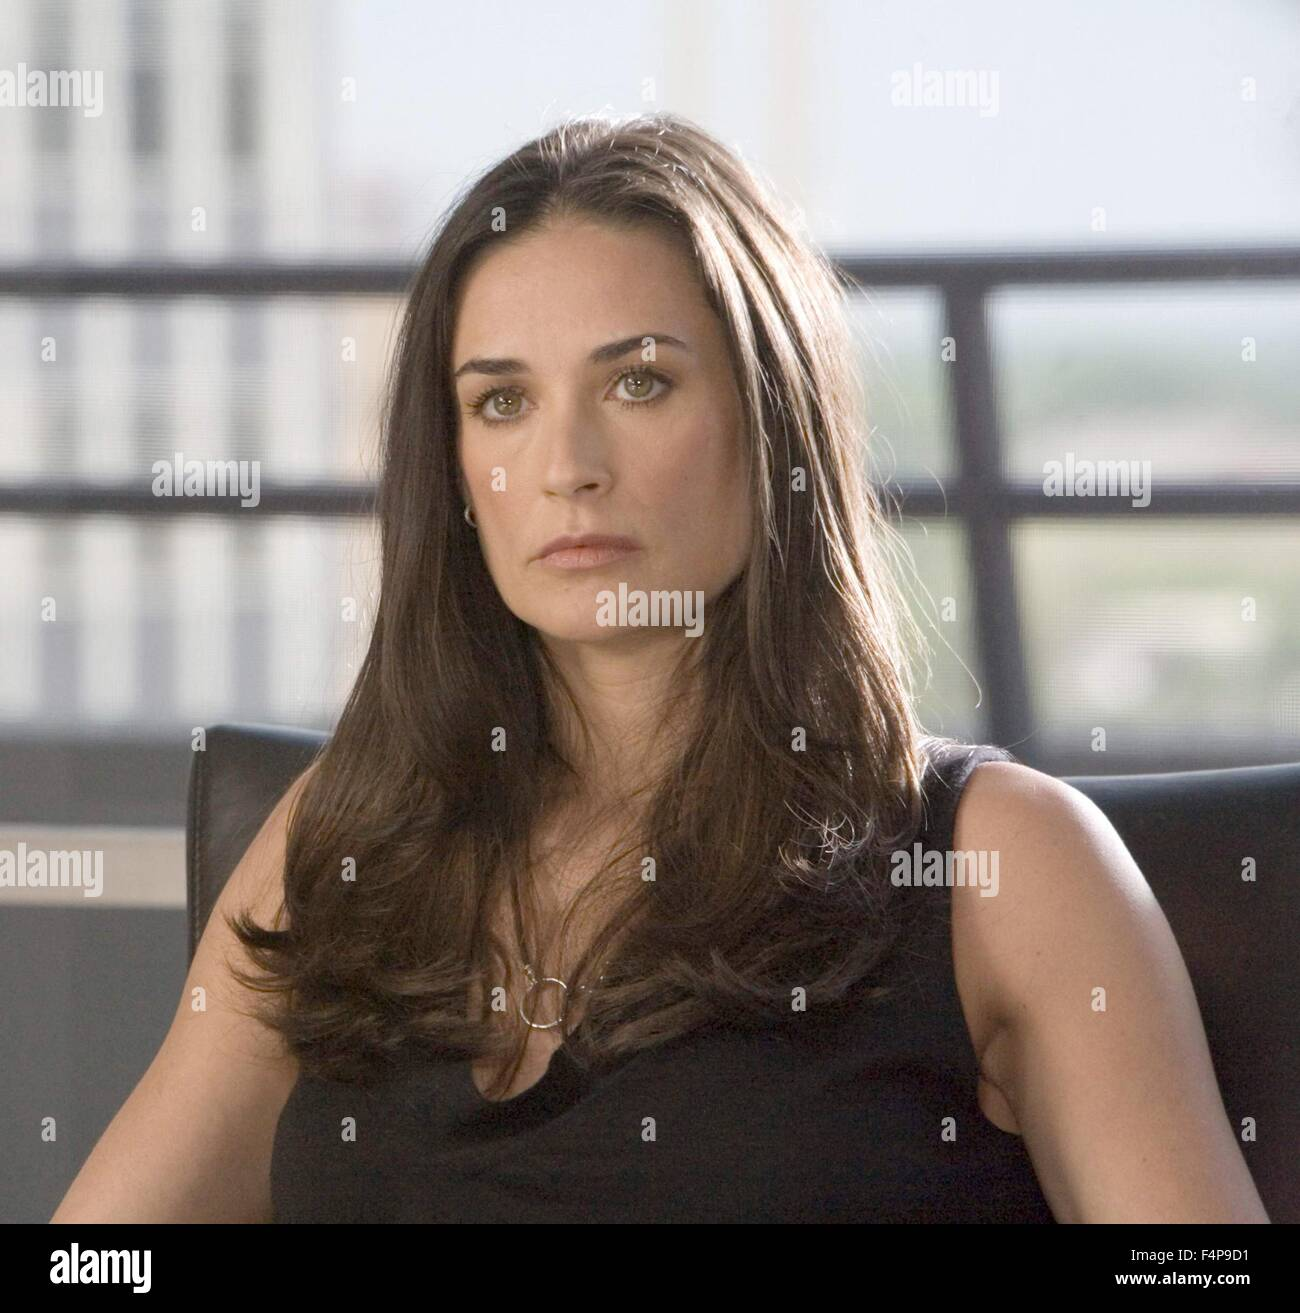 Demi Moore / Disclosure 1994 directed by Barry Levinson - Stock Image